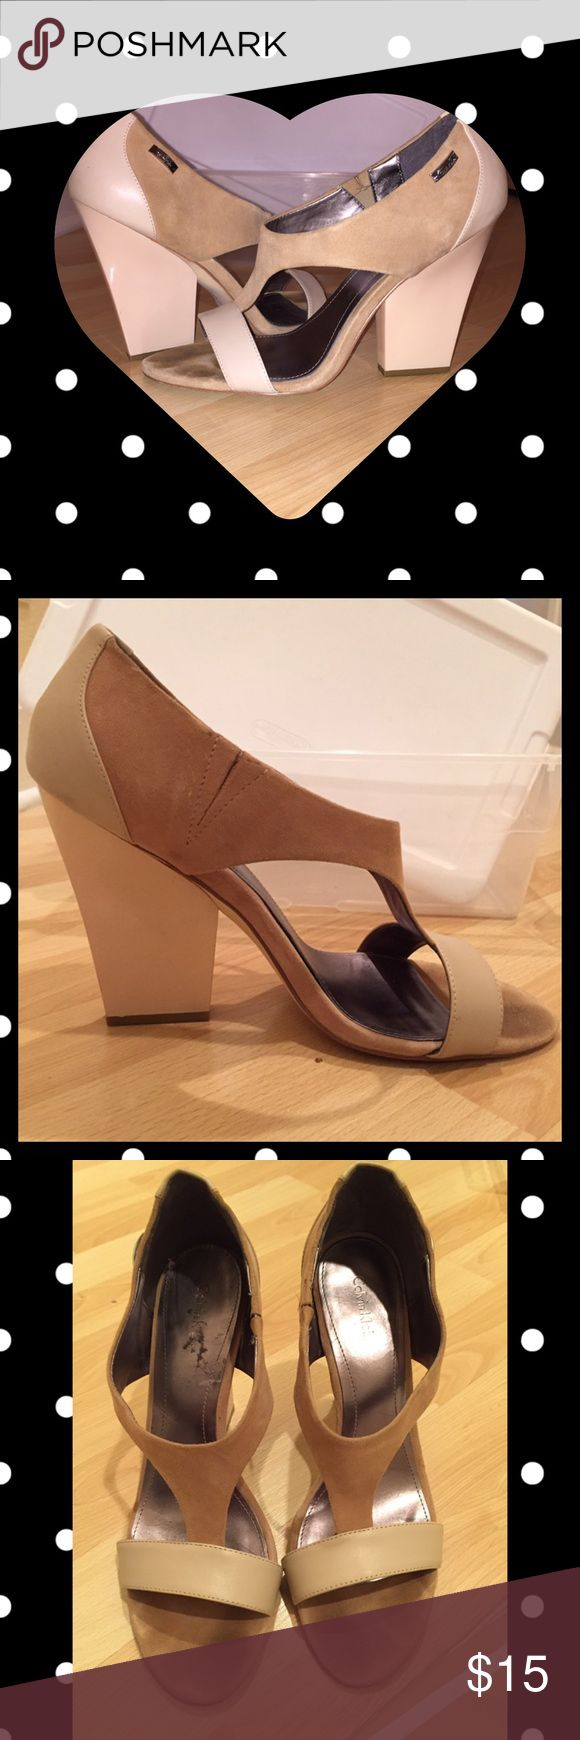 Calvin Klein heels! Tan/ cream pumps comfy for work or play! Calvin Klein Shoes Heels